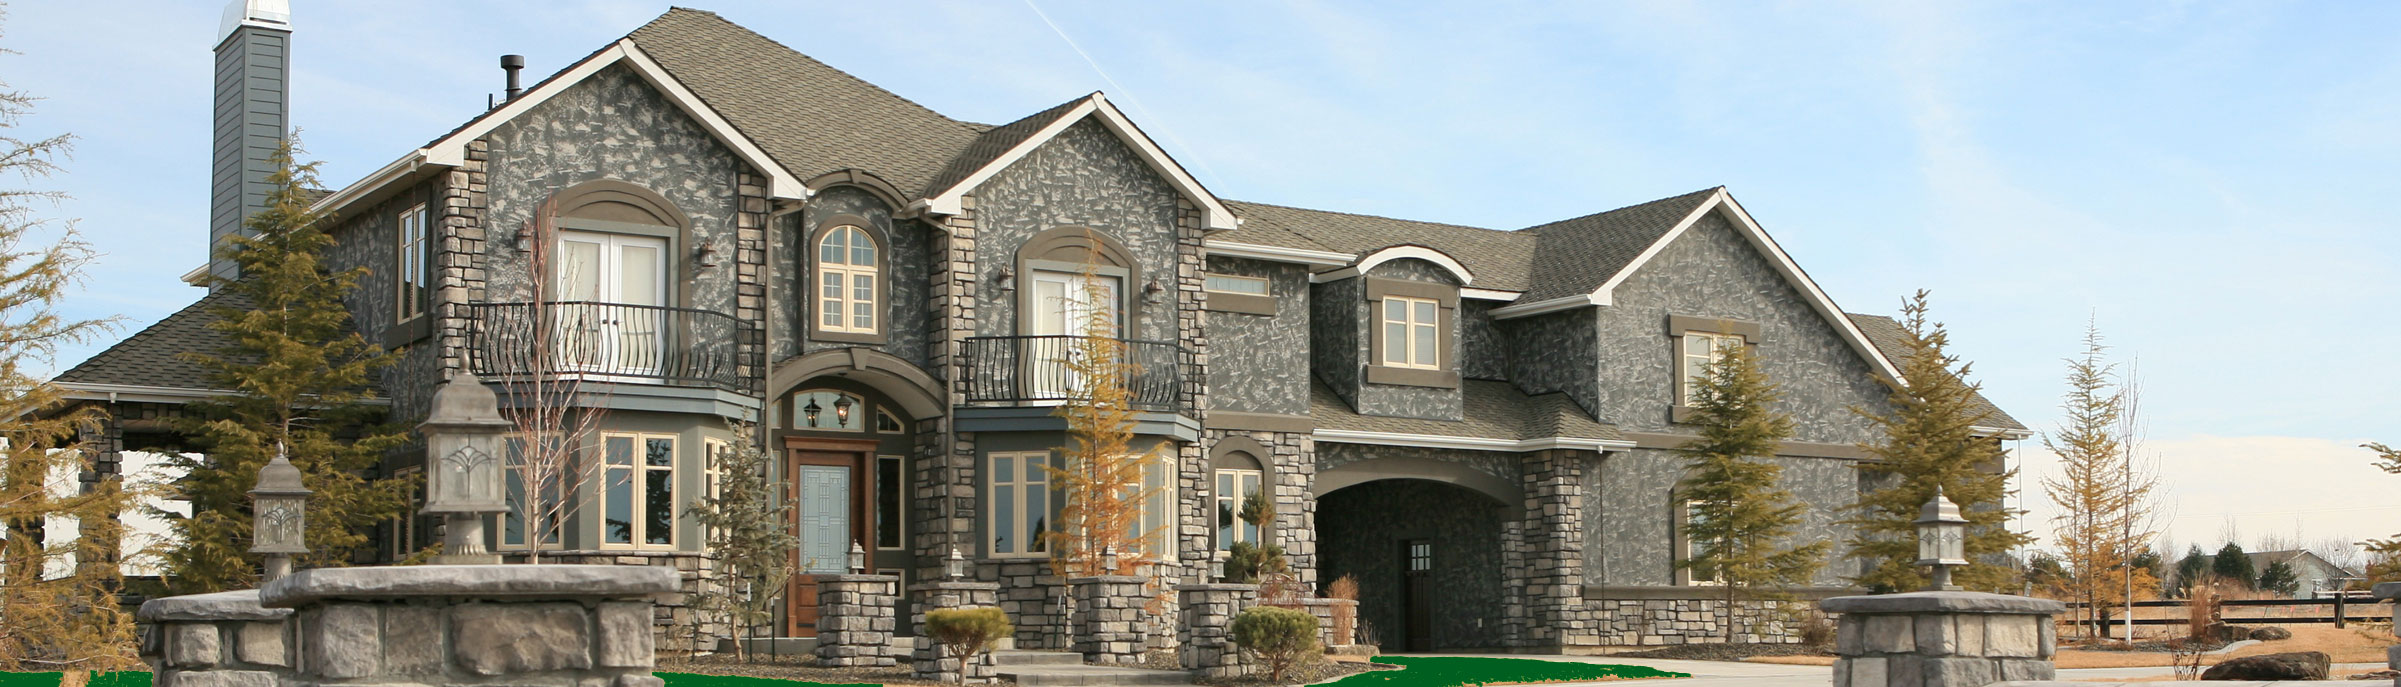 luxury home with stone facade